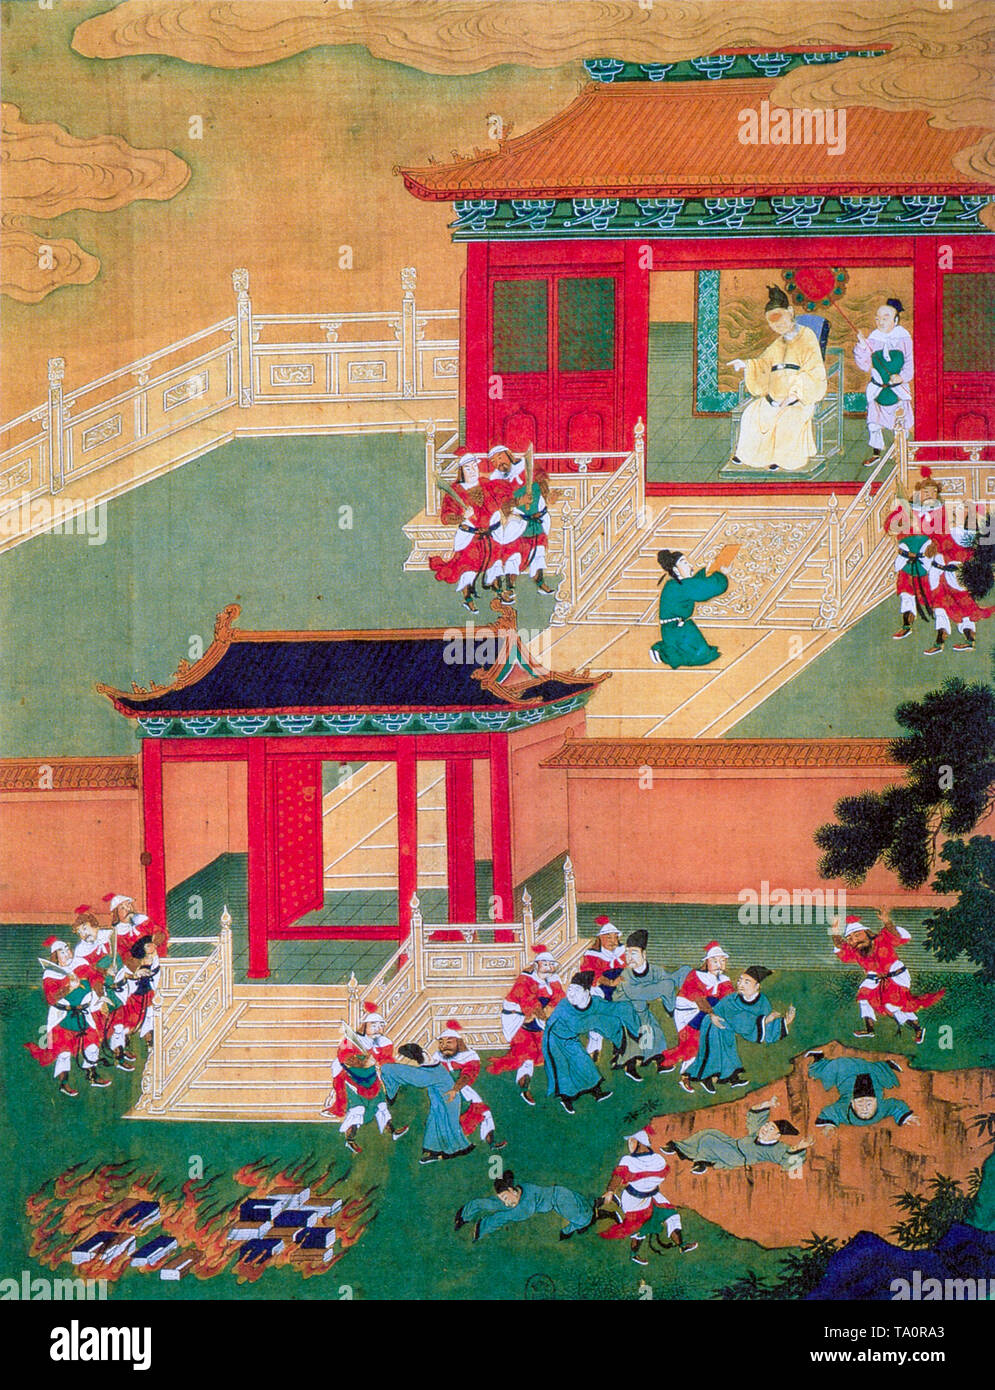 Burning of books and burying of alive of Confucian scholars in China under Qin Shi Huang in 213 BC, painting, 18th Century - Stock Image